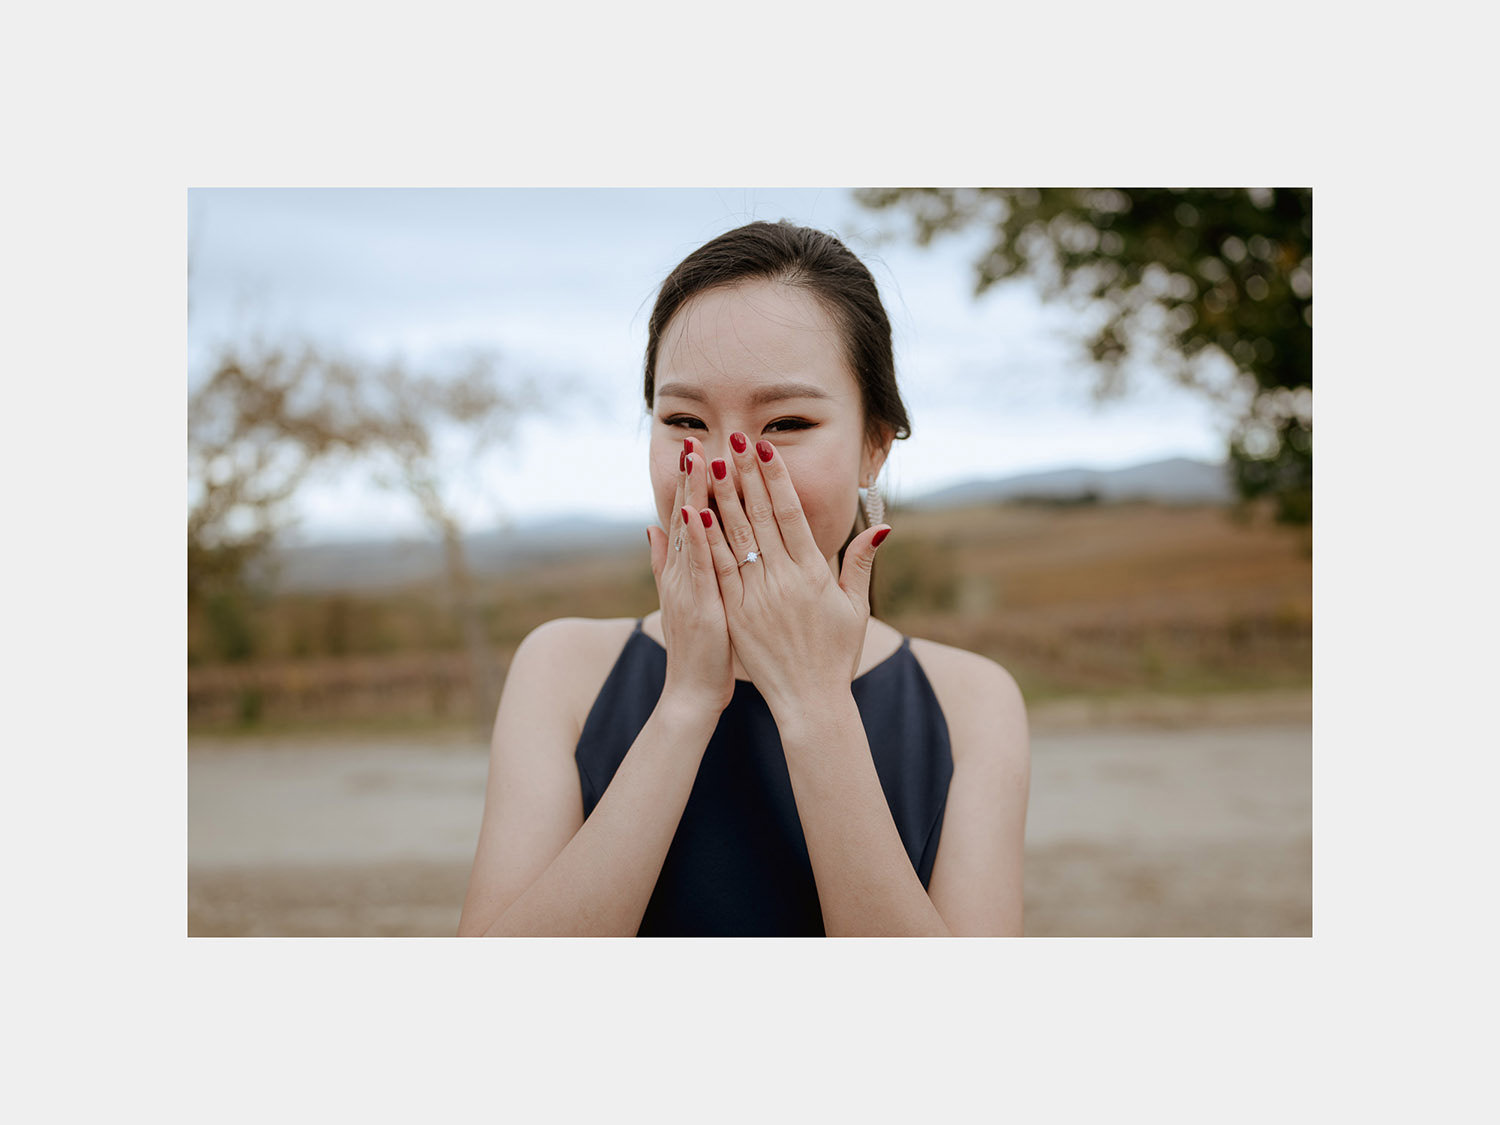 winter wedding proposal tuscany chianti genuine excited bride reaction